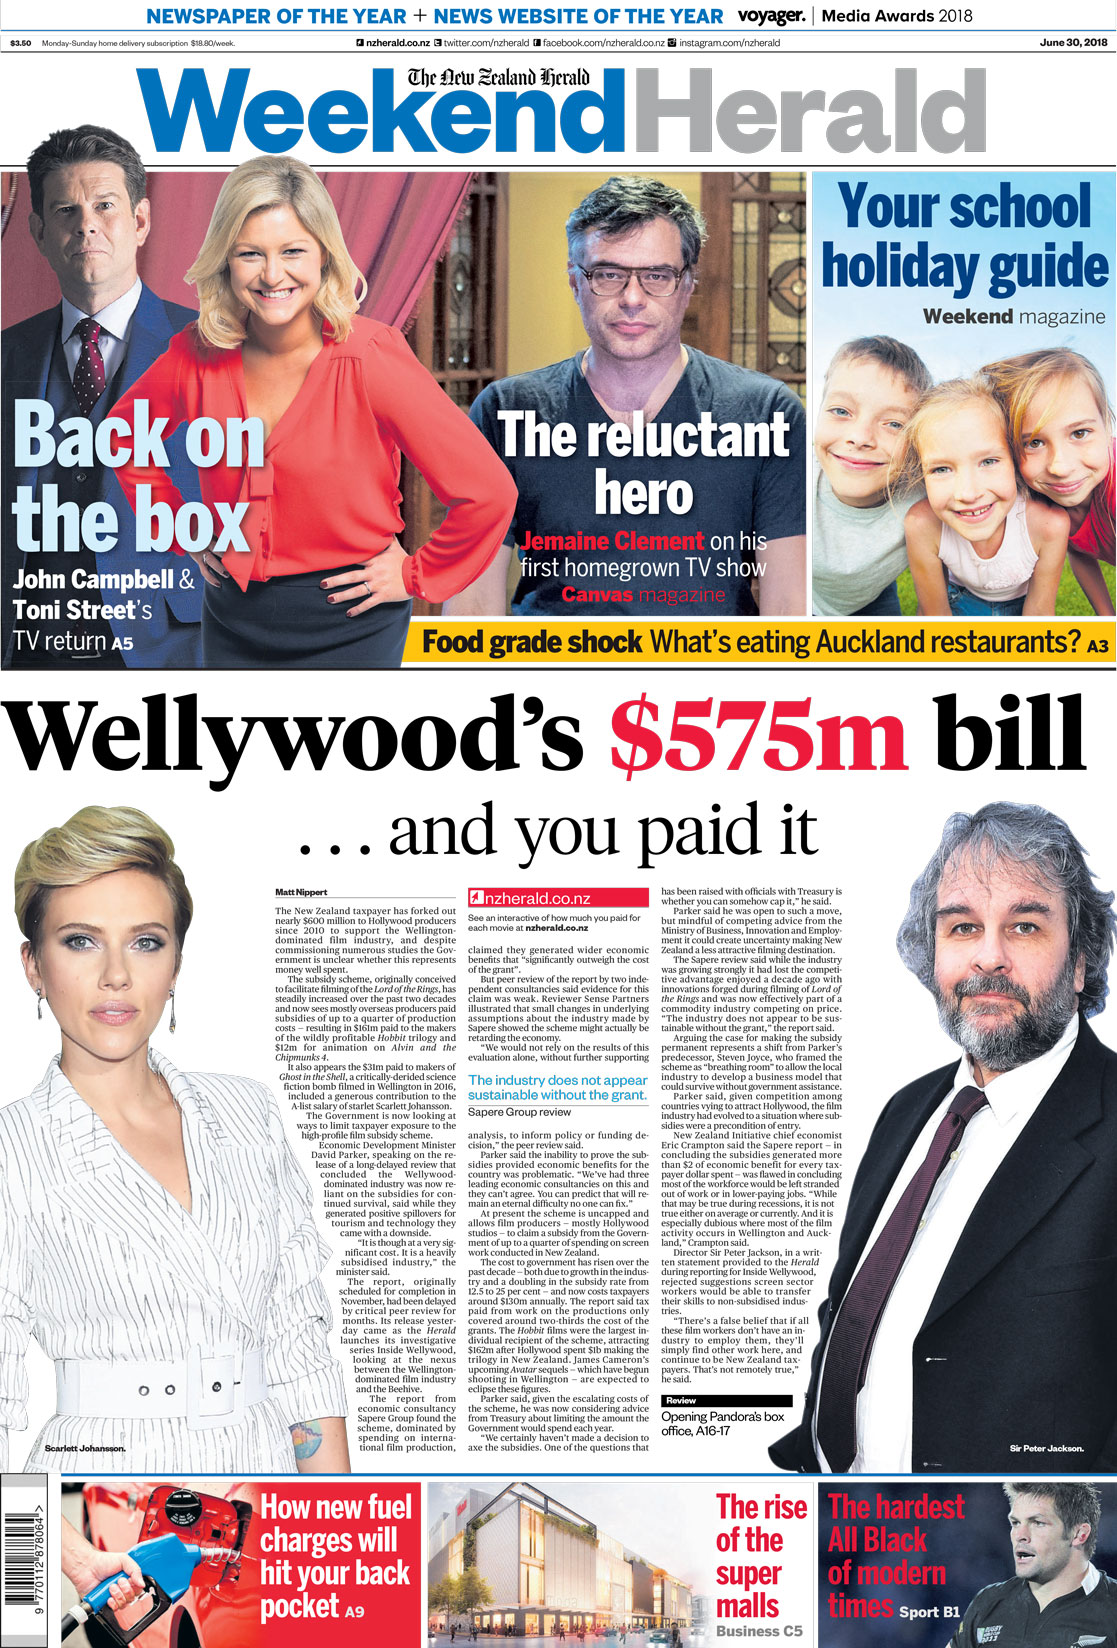 57_NOTY-more-than-30,000_5708_New-Zealand-Herald_Story-1.jpg